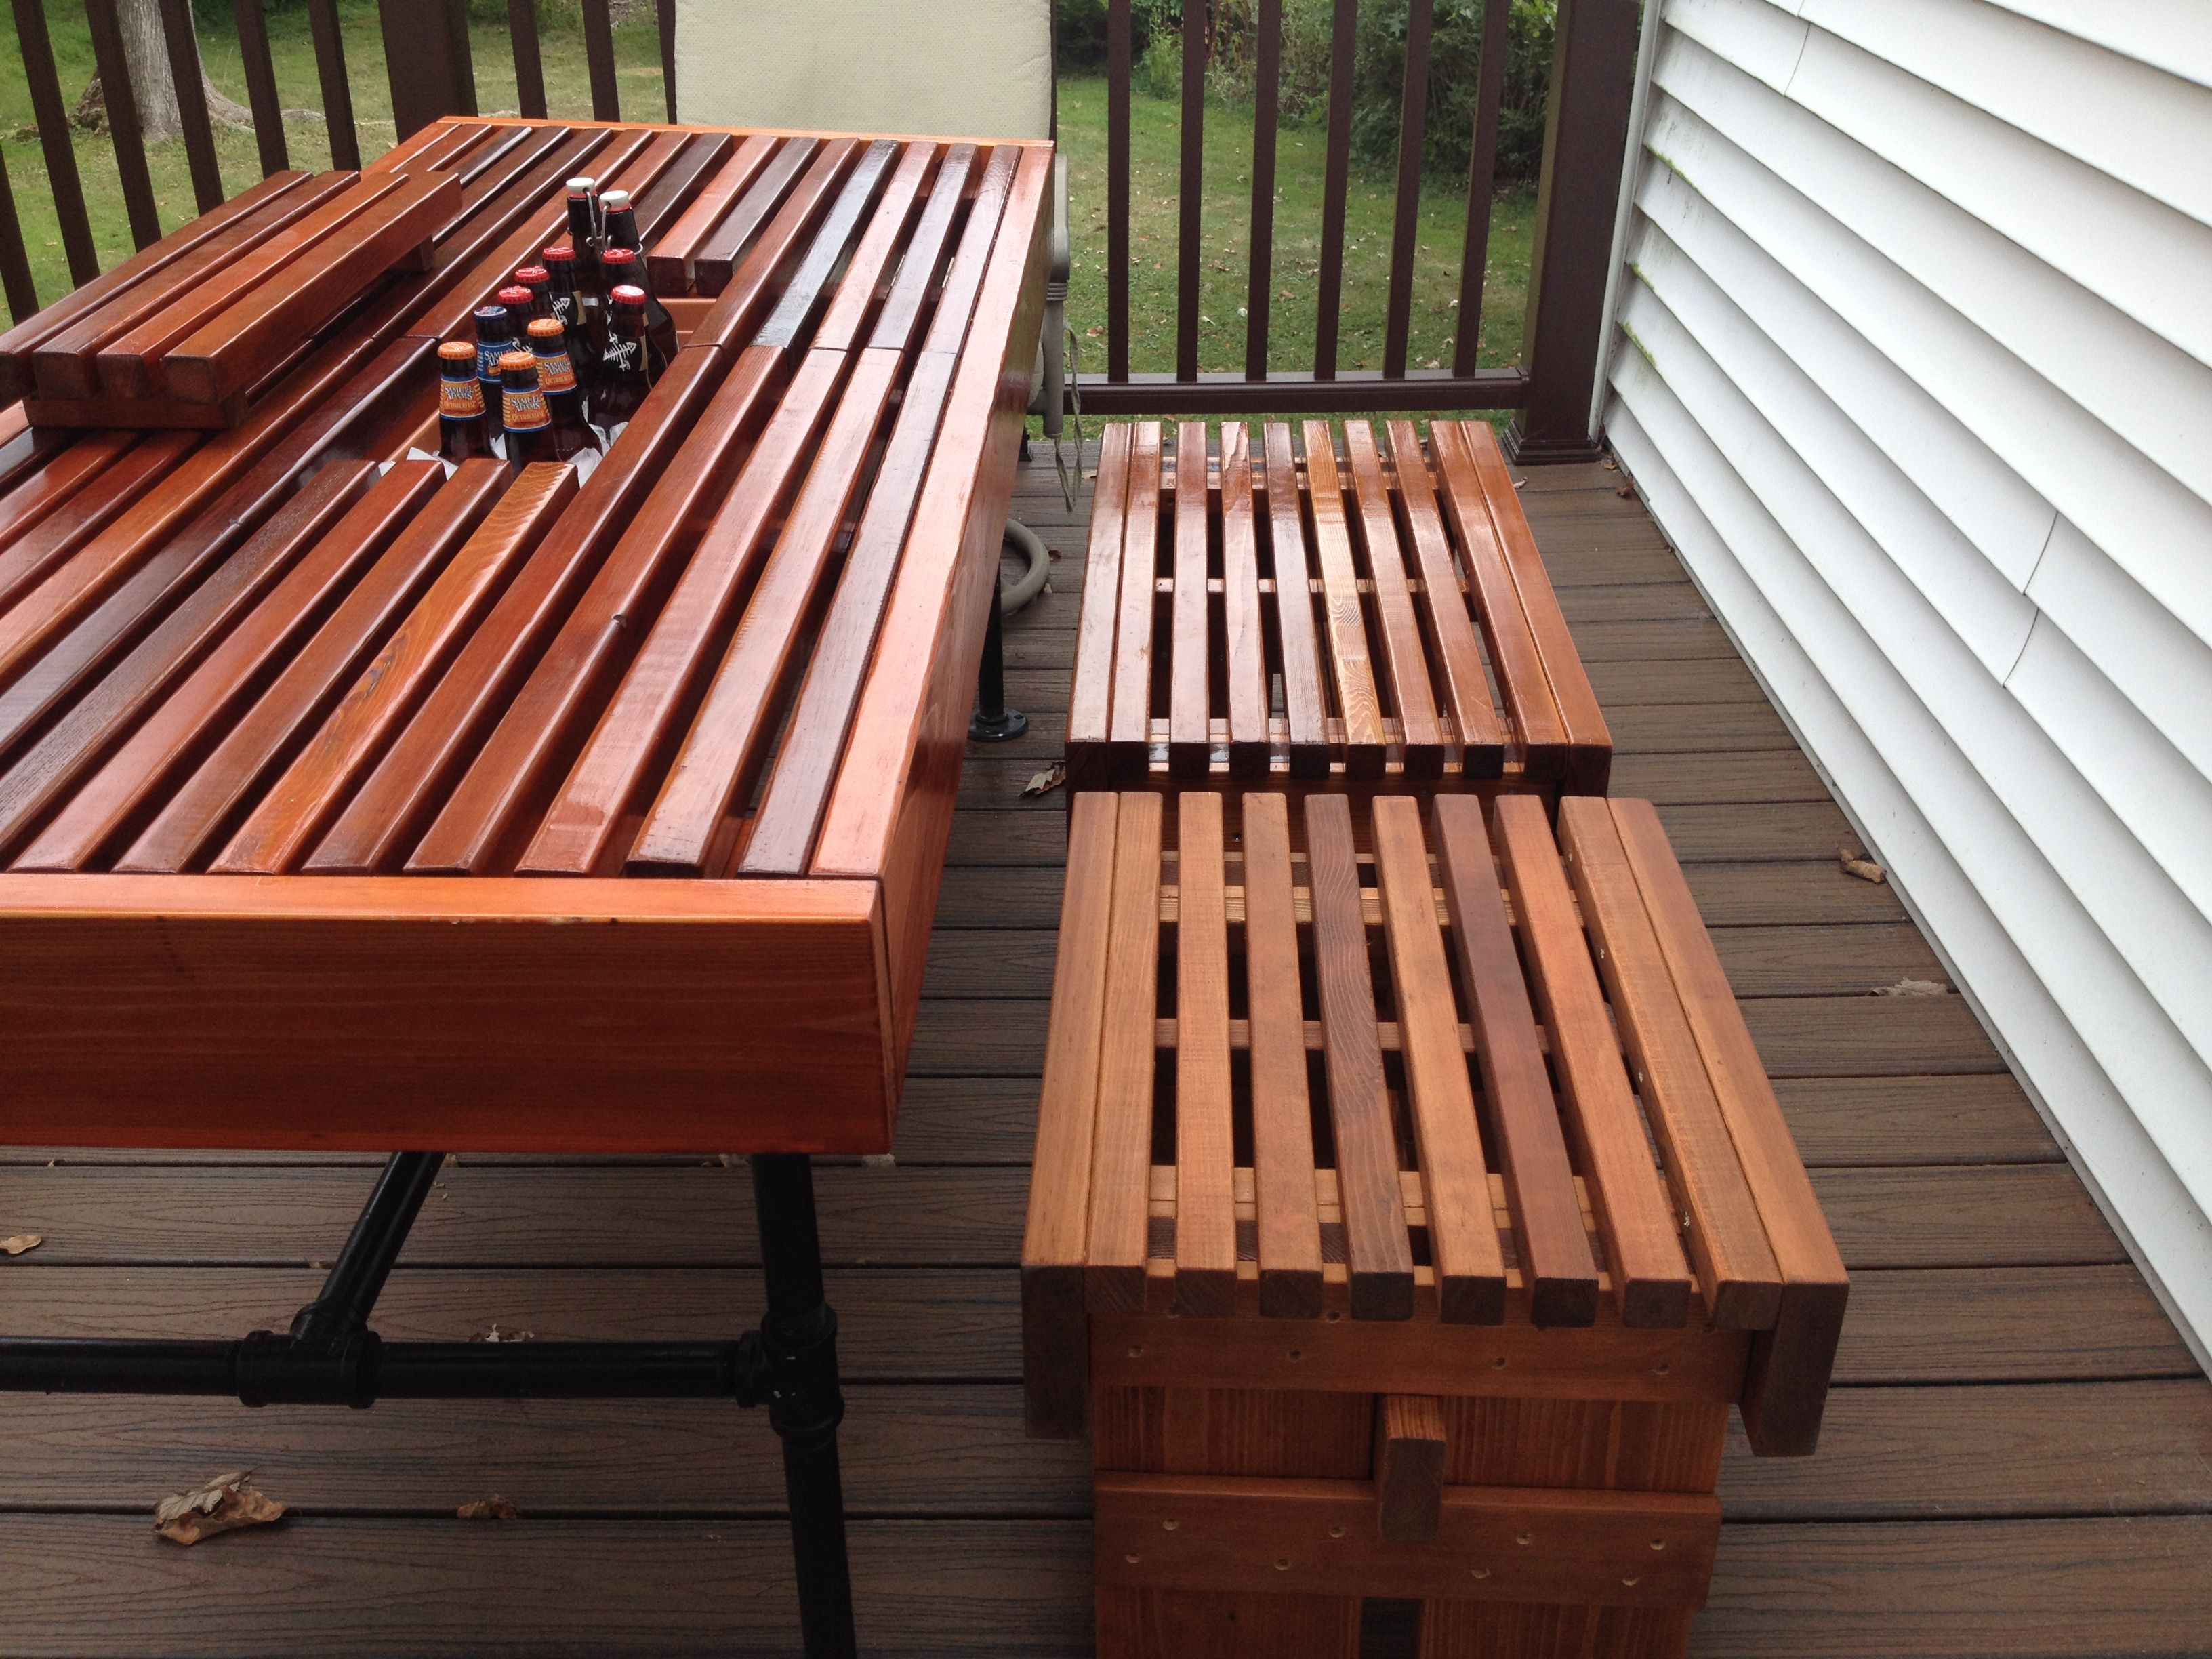 Matching outdoor benches for cooler table